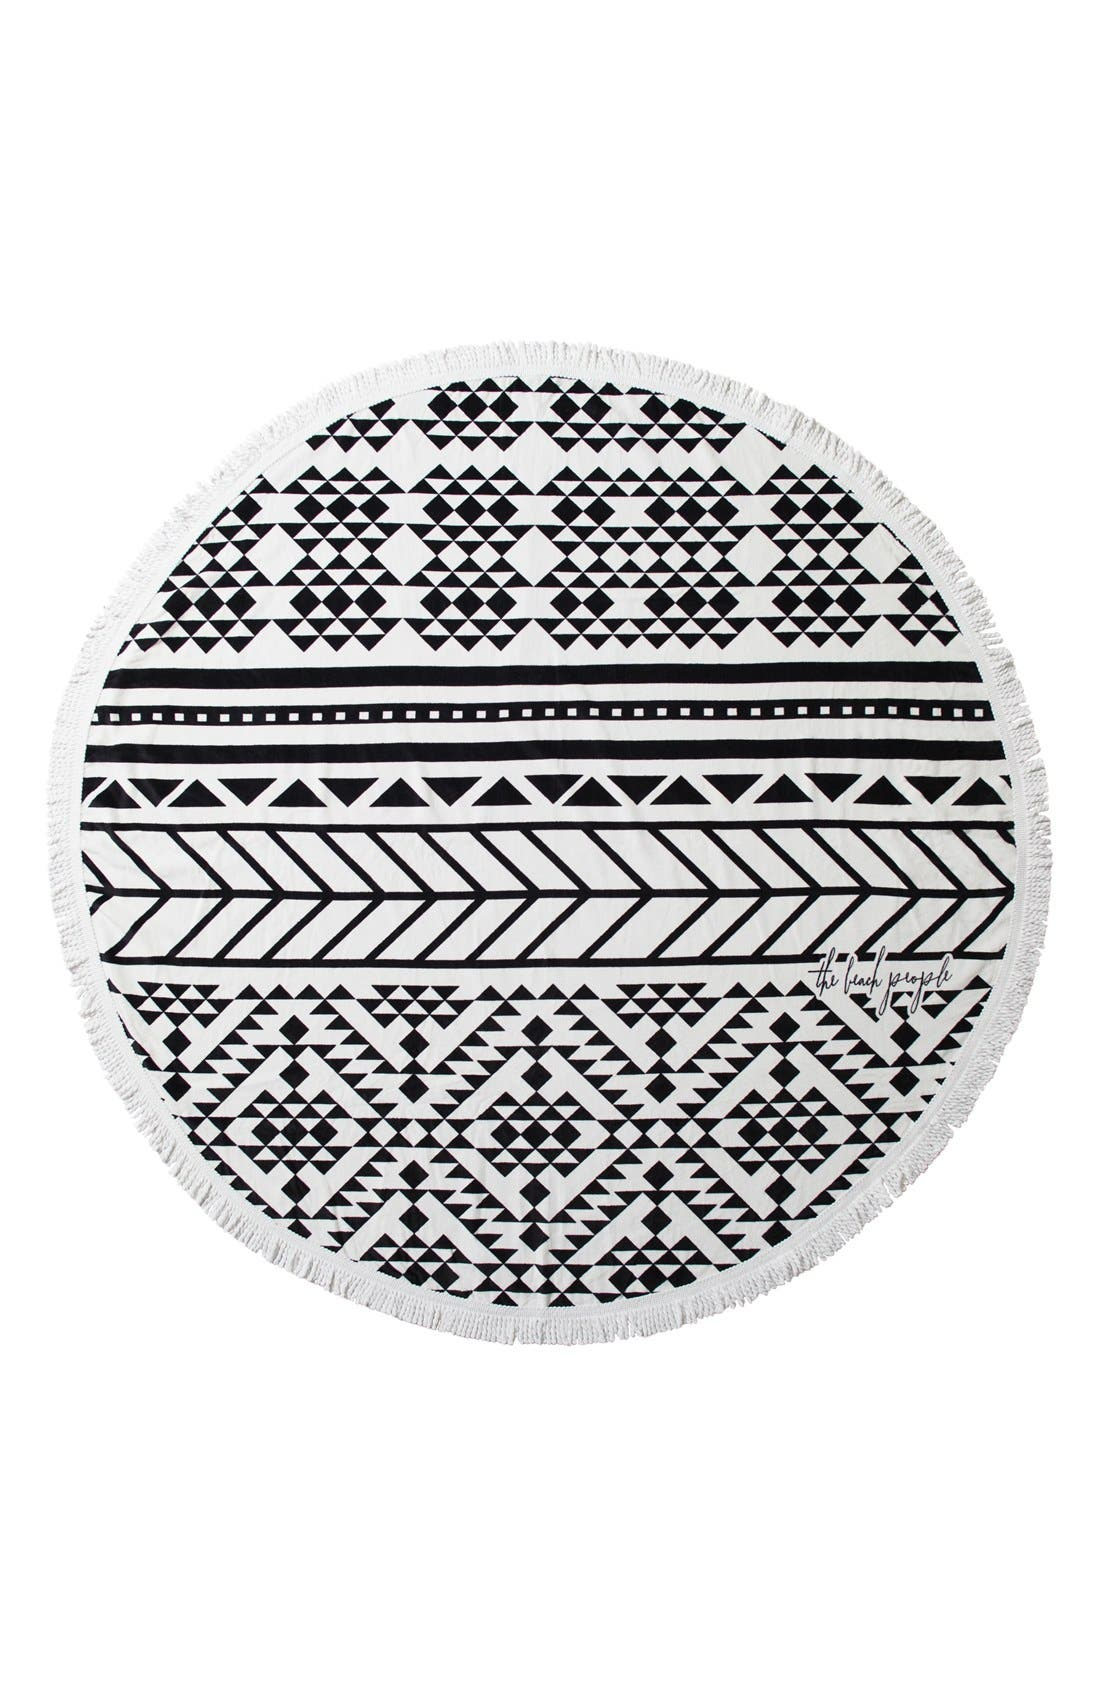 The Beach People Geometric Print Round Beach Towel